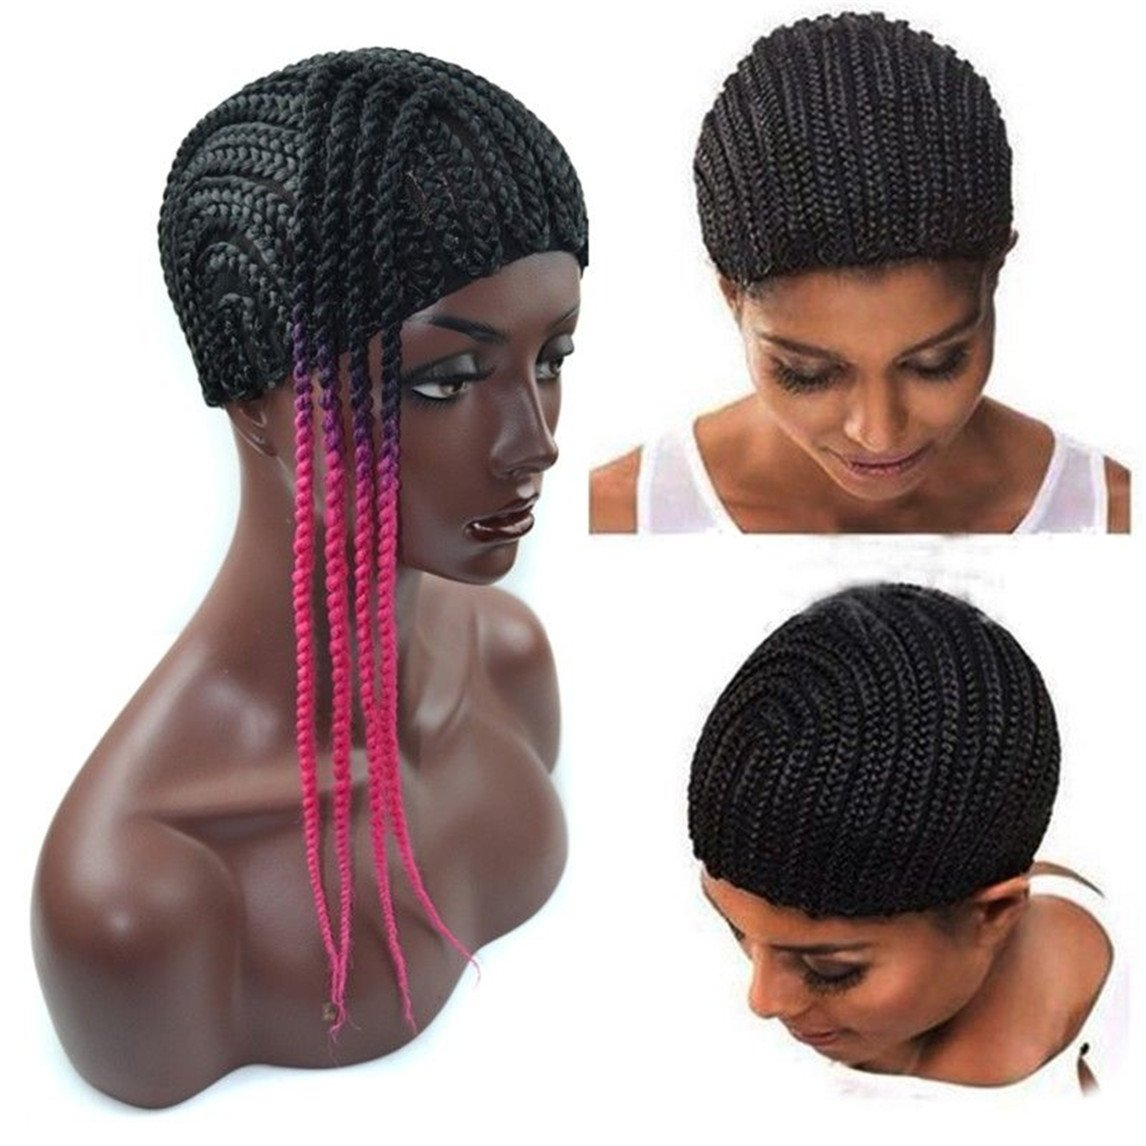 Black Hairnets Cap Cornrow Wig For Making Crochet Braid Weave Cap